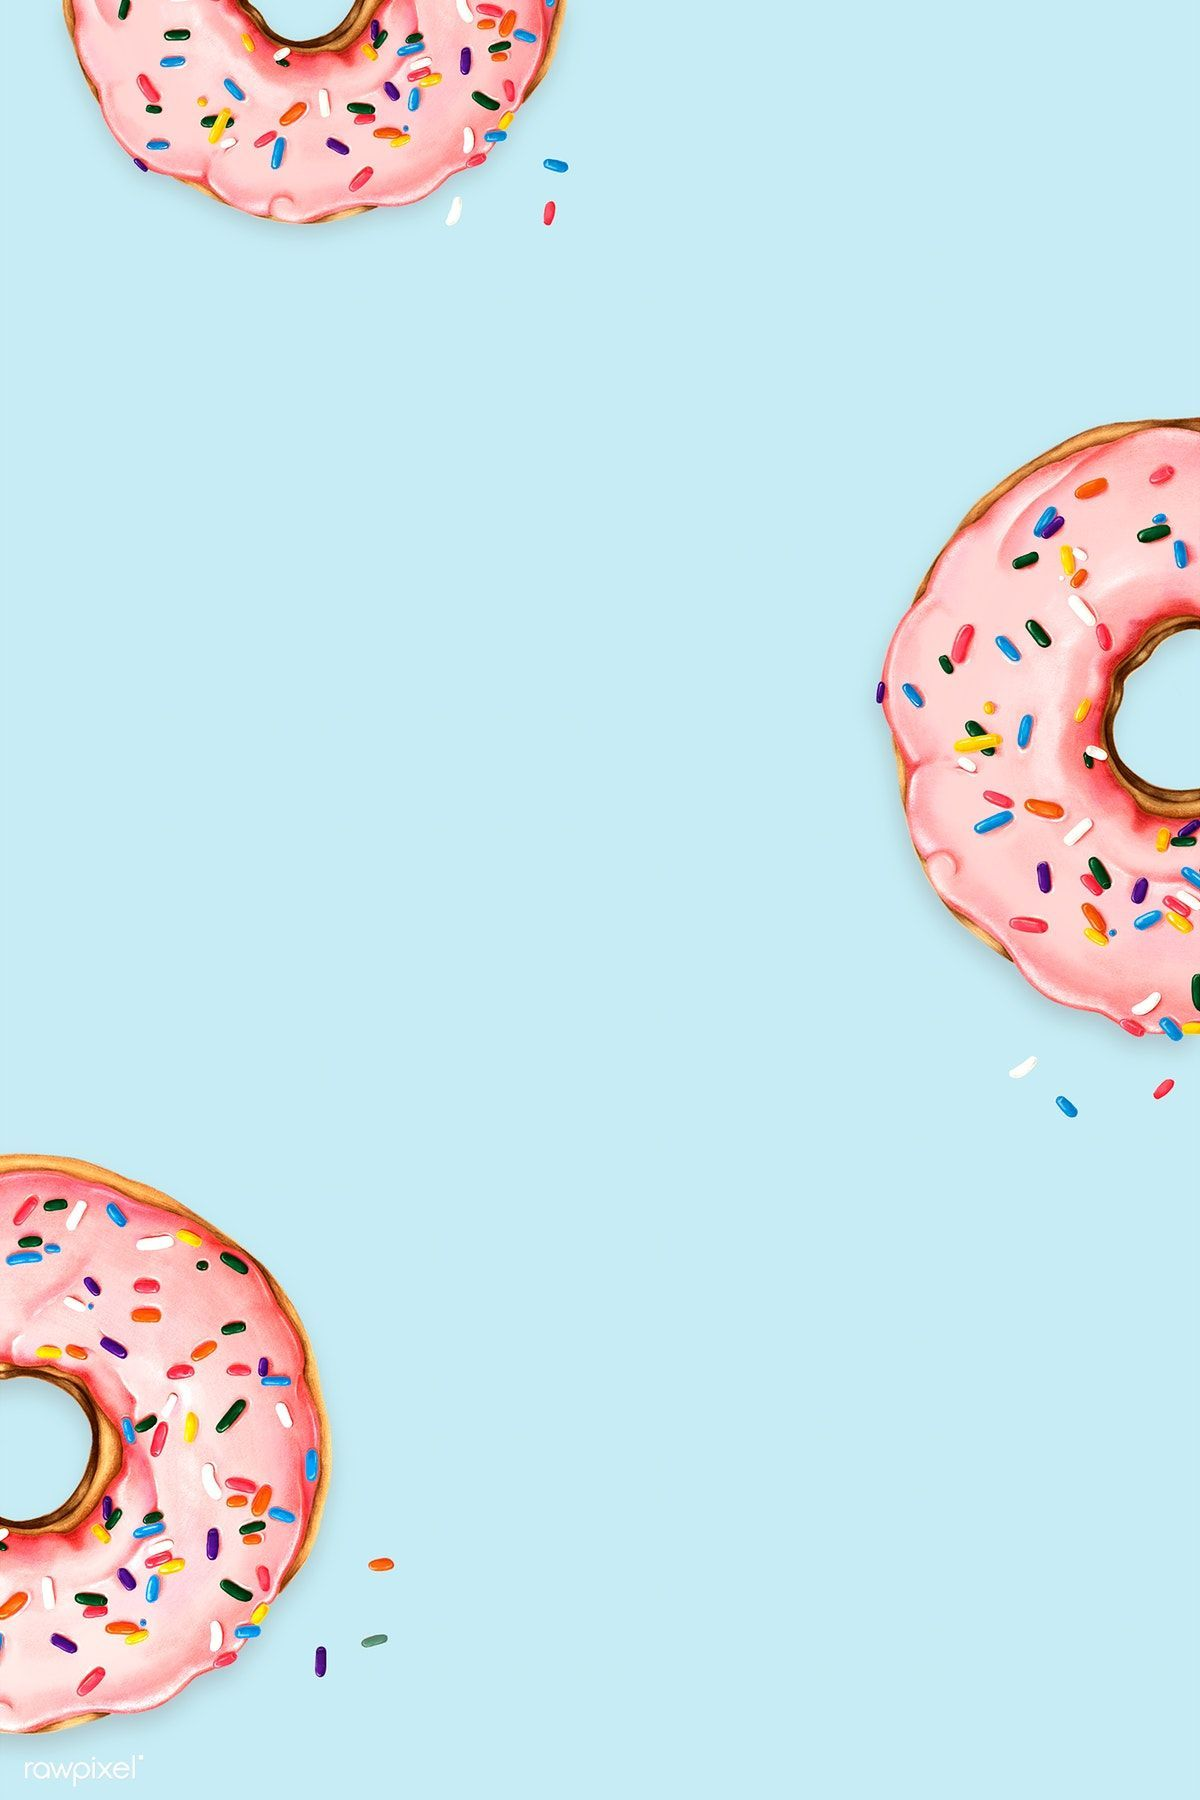 Download illustration of Hand drawn pink donuts on blue 1200x1800